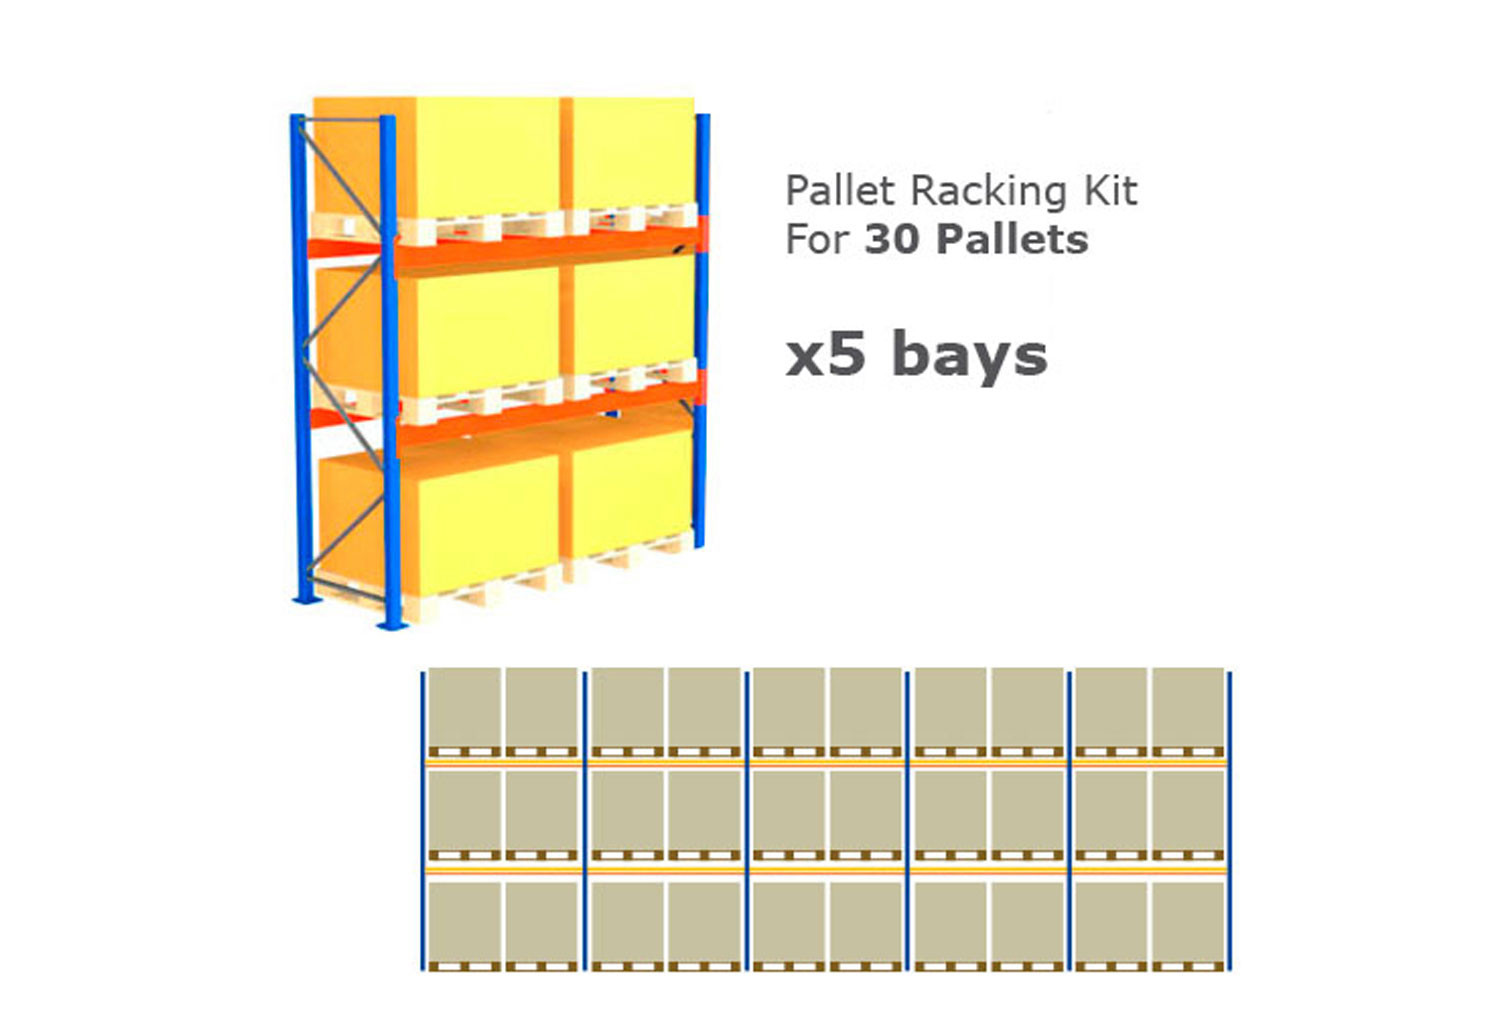 Pallet Racking Kit For 30 Pallets 14075wx4000h